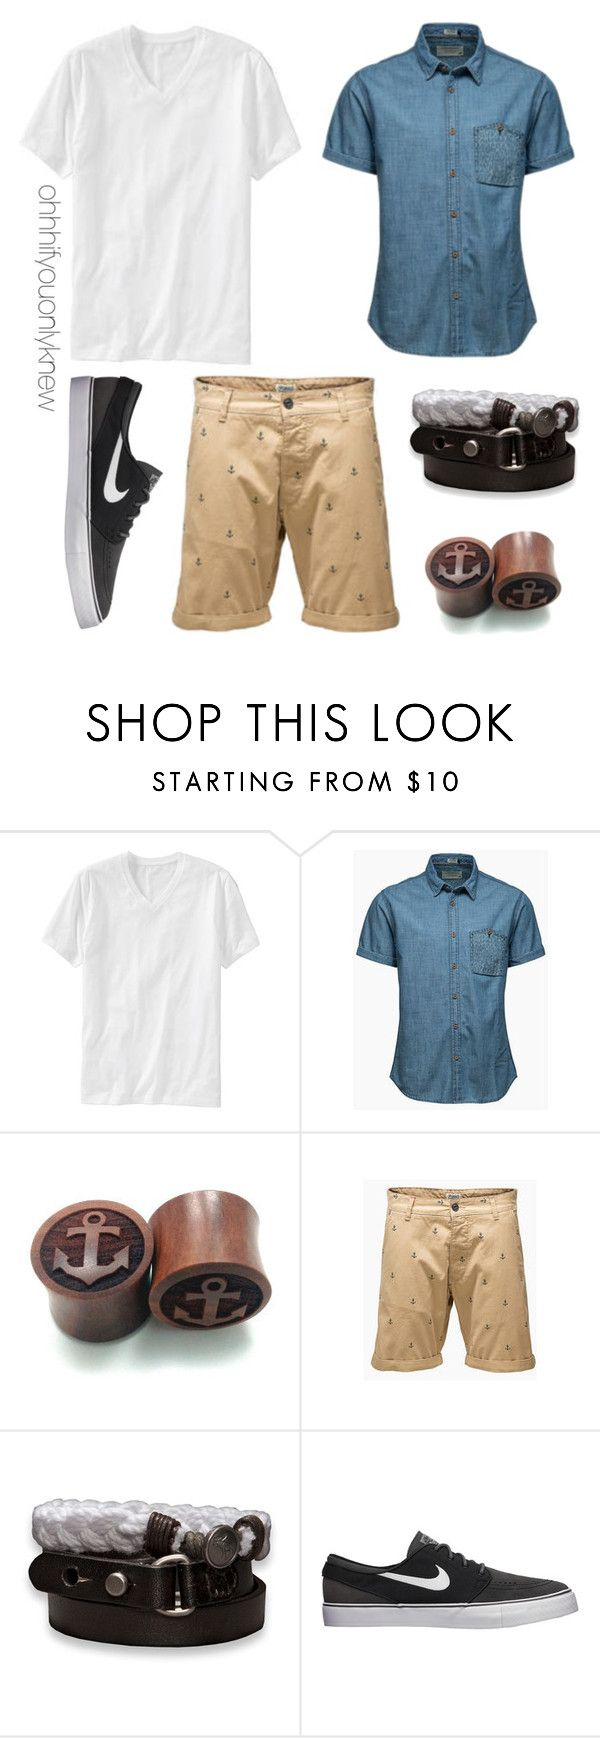 """""""Untitled #200"""" by ohhhifyouonlyknew ❤ liked on Polyvore featuring Old Navy, Jack & Jones, Abercrombie & Fitch, NIKE, tomboy and dyke"""